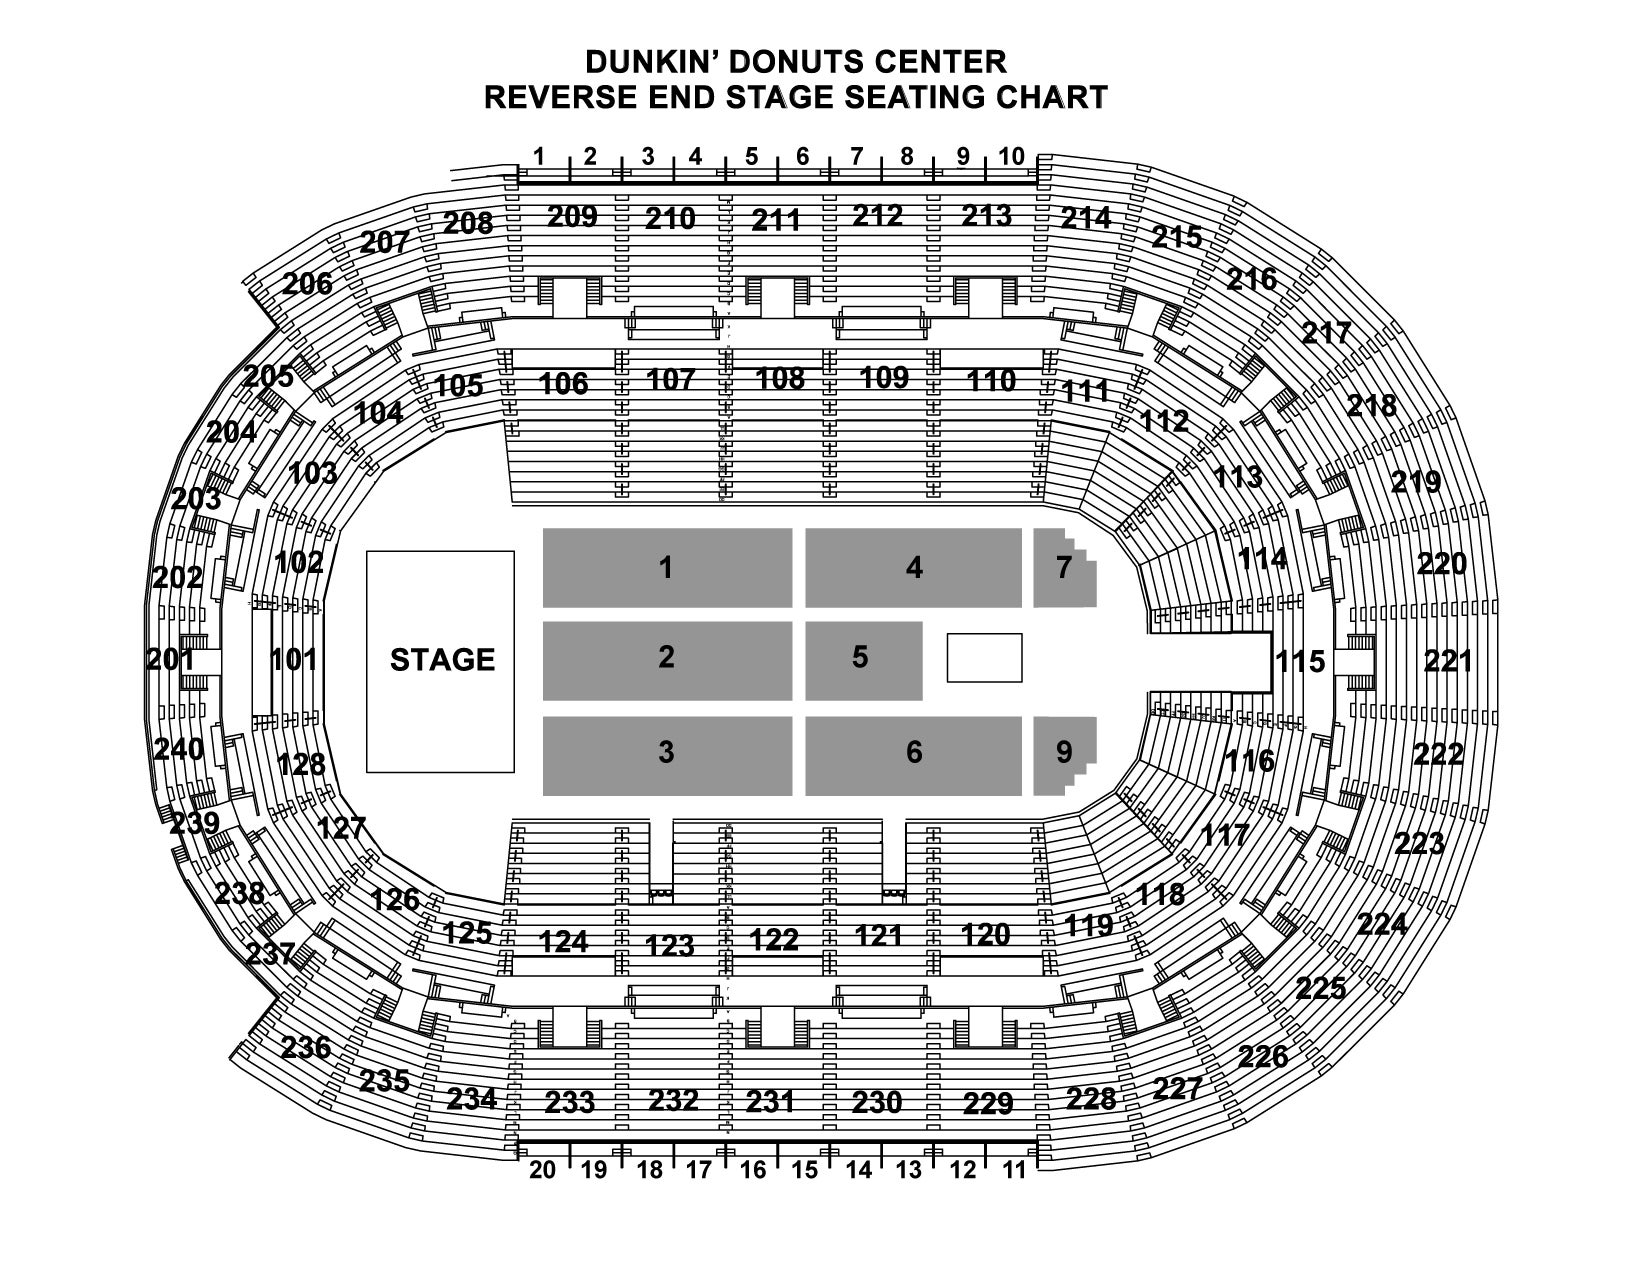 Reverse End Seating Chart